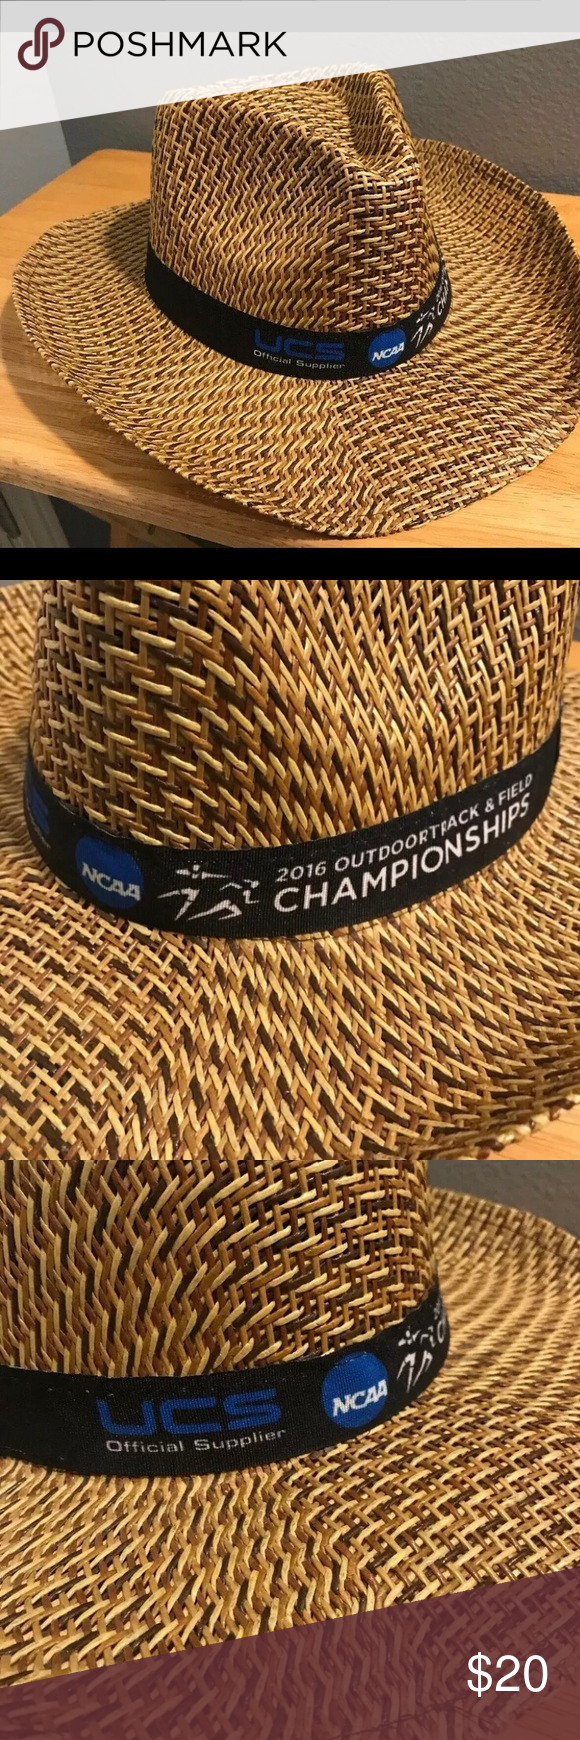 Outback Style 2016 NCAA Track & Field Straw Hat Outback Straw Hat ; 2016 Outdoor Track & Field Championships - Rare Item. Condition is Used.   This hat is really cool - perfect condition and isn't something you see every day !  Fight the sun with this cool hat; if you are a NCAA track fan... you gotta have it !! Accessories Hats #gottahaveit